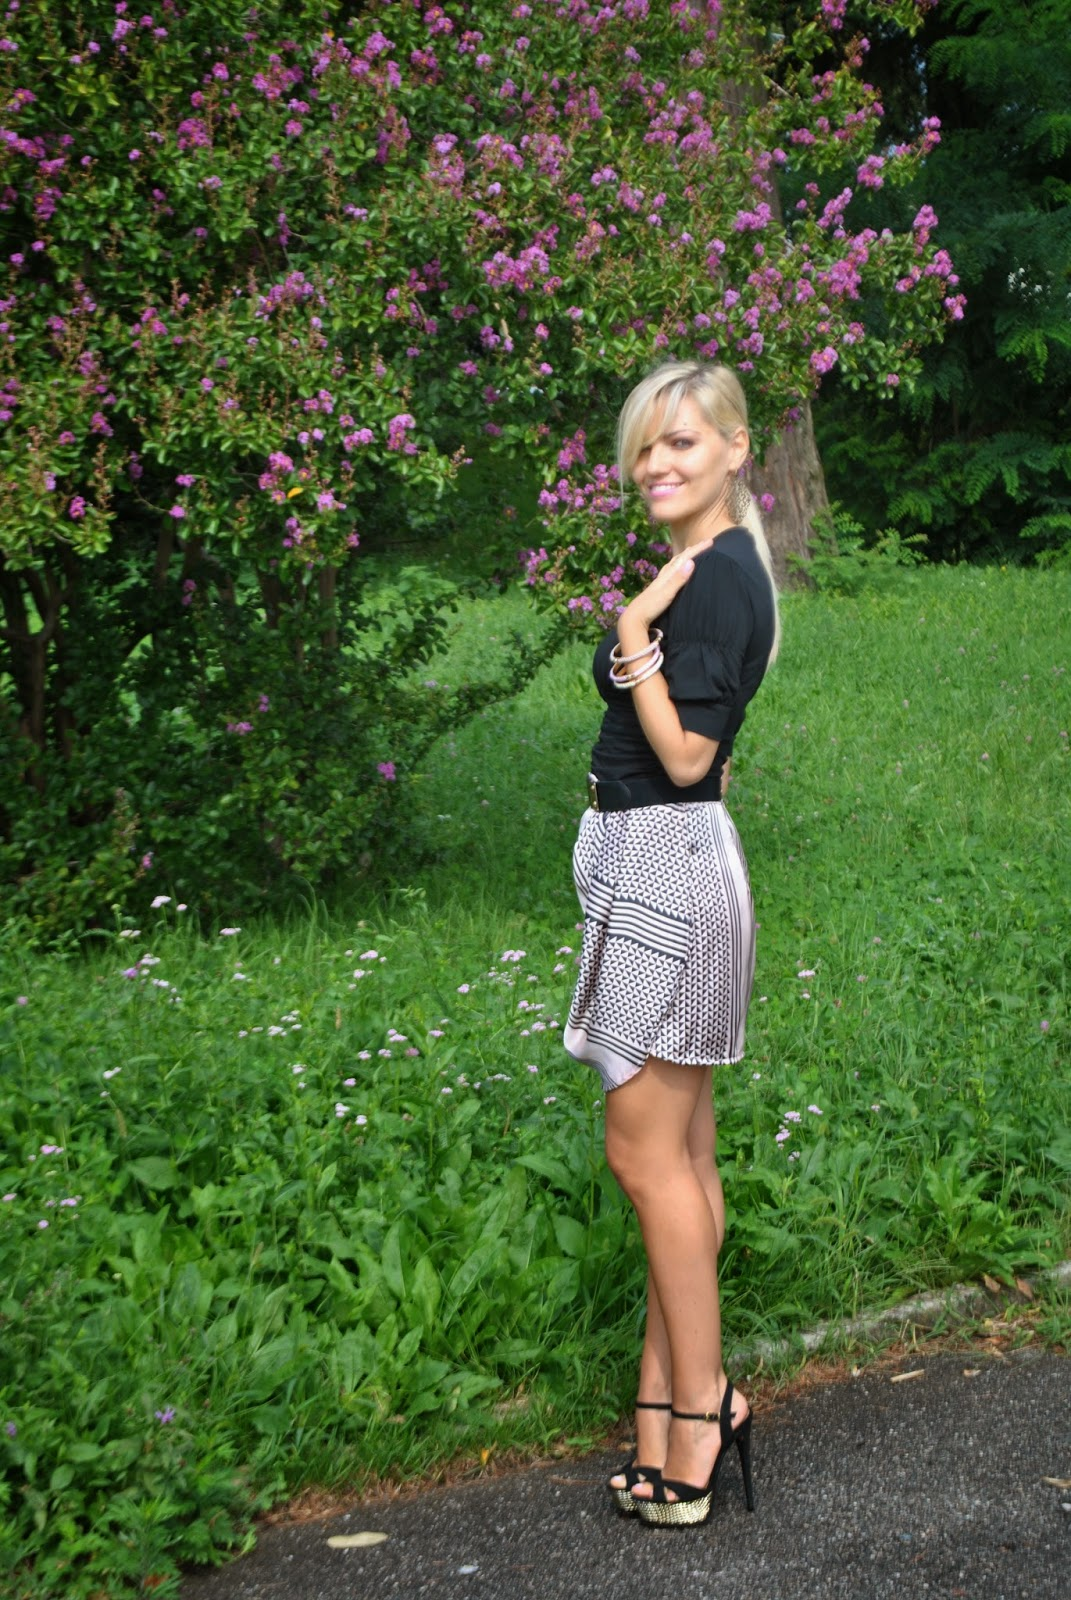 outfit gonna portafoglio nera e rosa outfit scarpe chutz sandali schuts neri e oro con plateau bracciali majique anello stroili oro maglia nera con maniche a palloncino fornarina coda di cavallo fashion blogger italiane fashion blogger bionde fashion blogger milano fblogger colorblock by felym outfit di mariafelicia magno fashion blogger di colorblock by felym outfit estivi eleganti outfit estivi outfit estate 2014 outfit settembre 2014 fblogger lookbook streetstyle gonna portafoglio smalto rosa